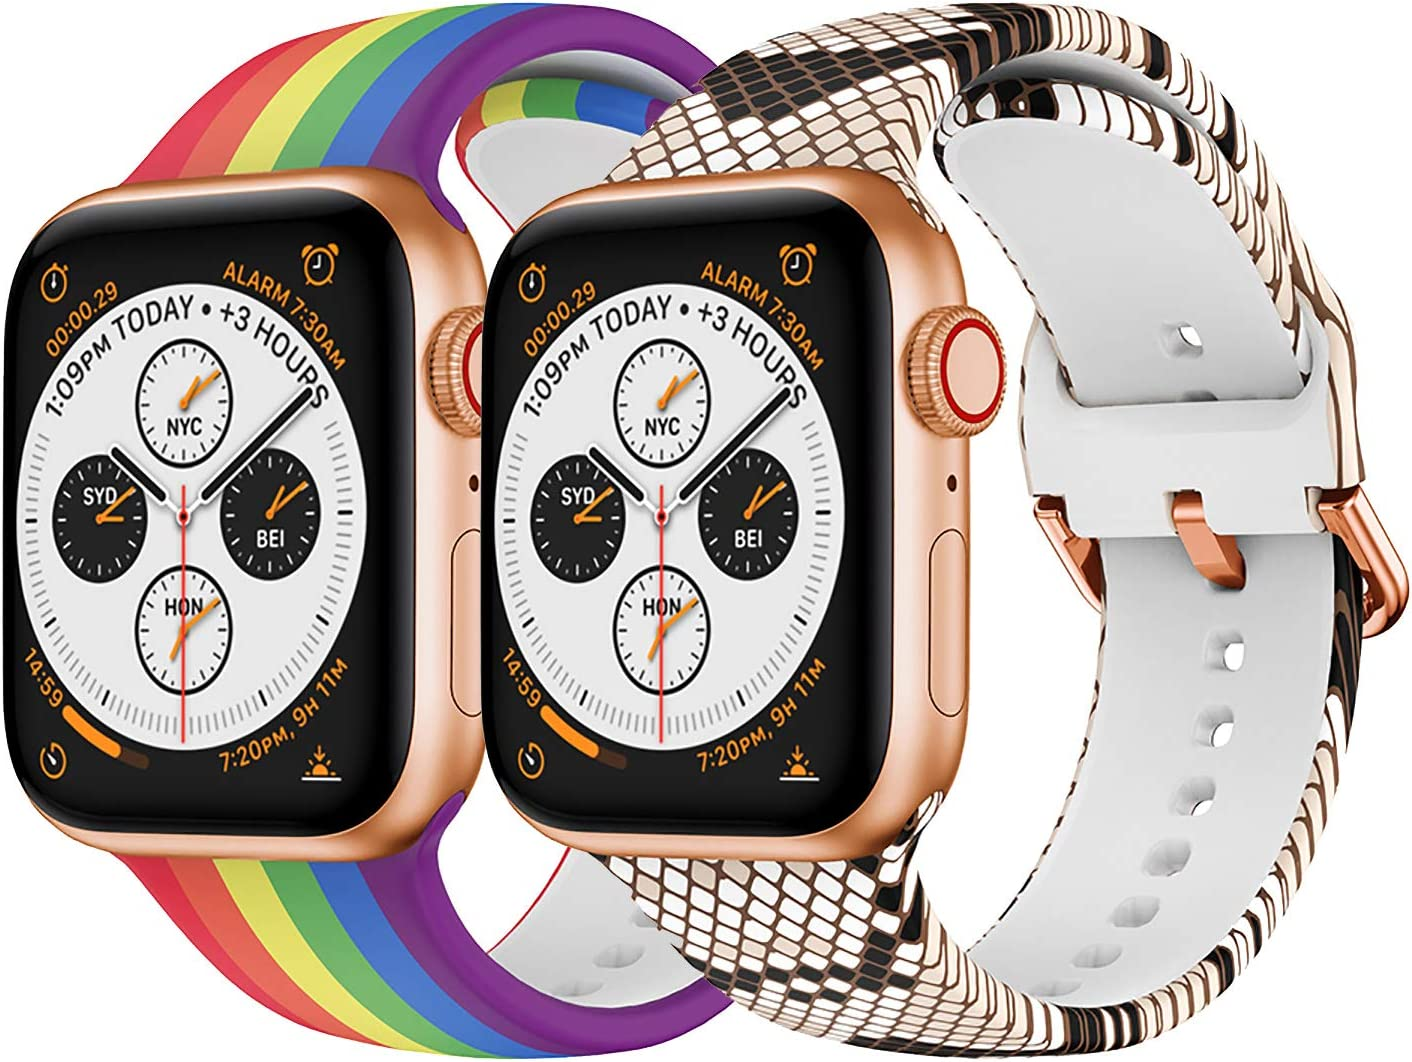 Magwei Sport Band Compatible with Apple Watch 38mm 40mm 42mm 44mm,Soft Silicone Fadeless Pattern Printed Replacement Band Compatible for Apple Watch Series 6/5/4/3/2/1(Rainbow+Snakeskin, 42mm/44mm)